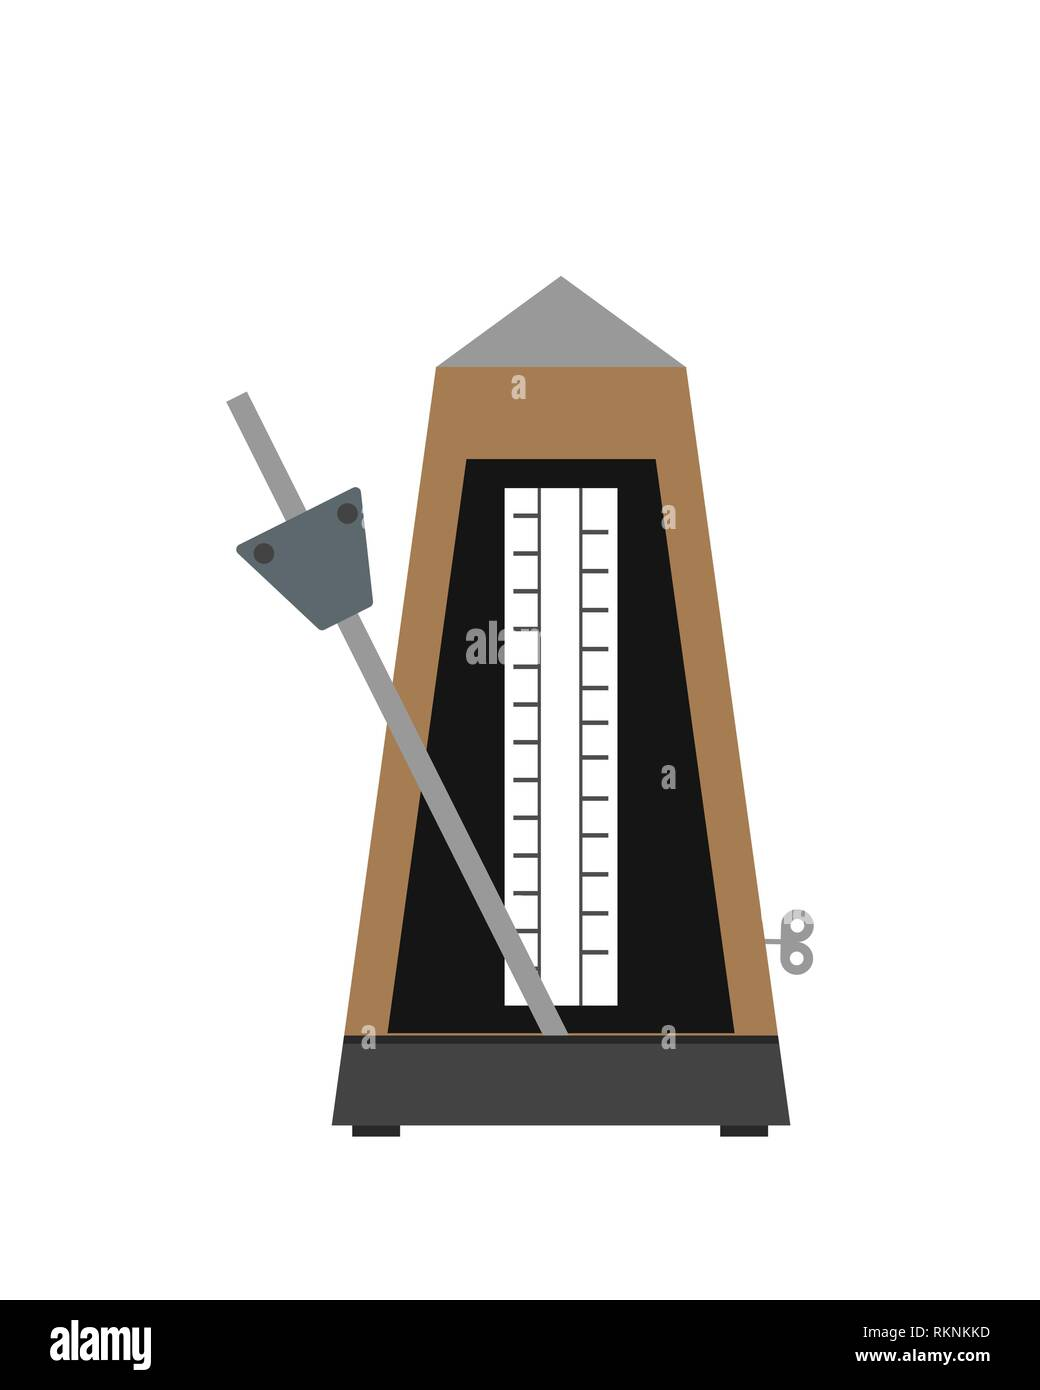 Classic Metronome with pendulum in motion. Equipment of music and beat mechanism. Vector Illustration - Stock Image